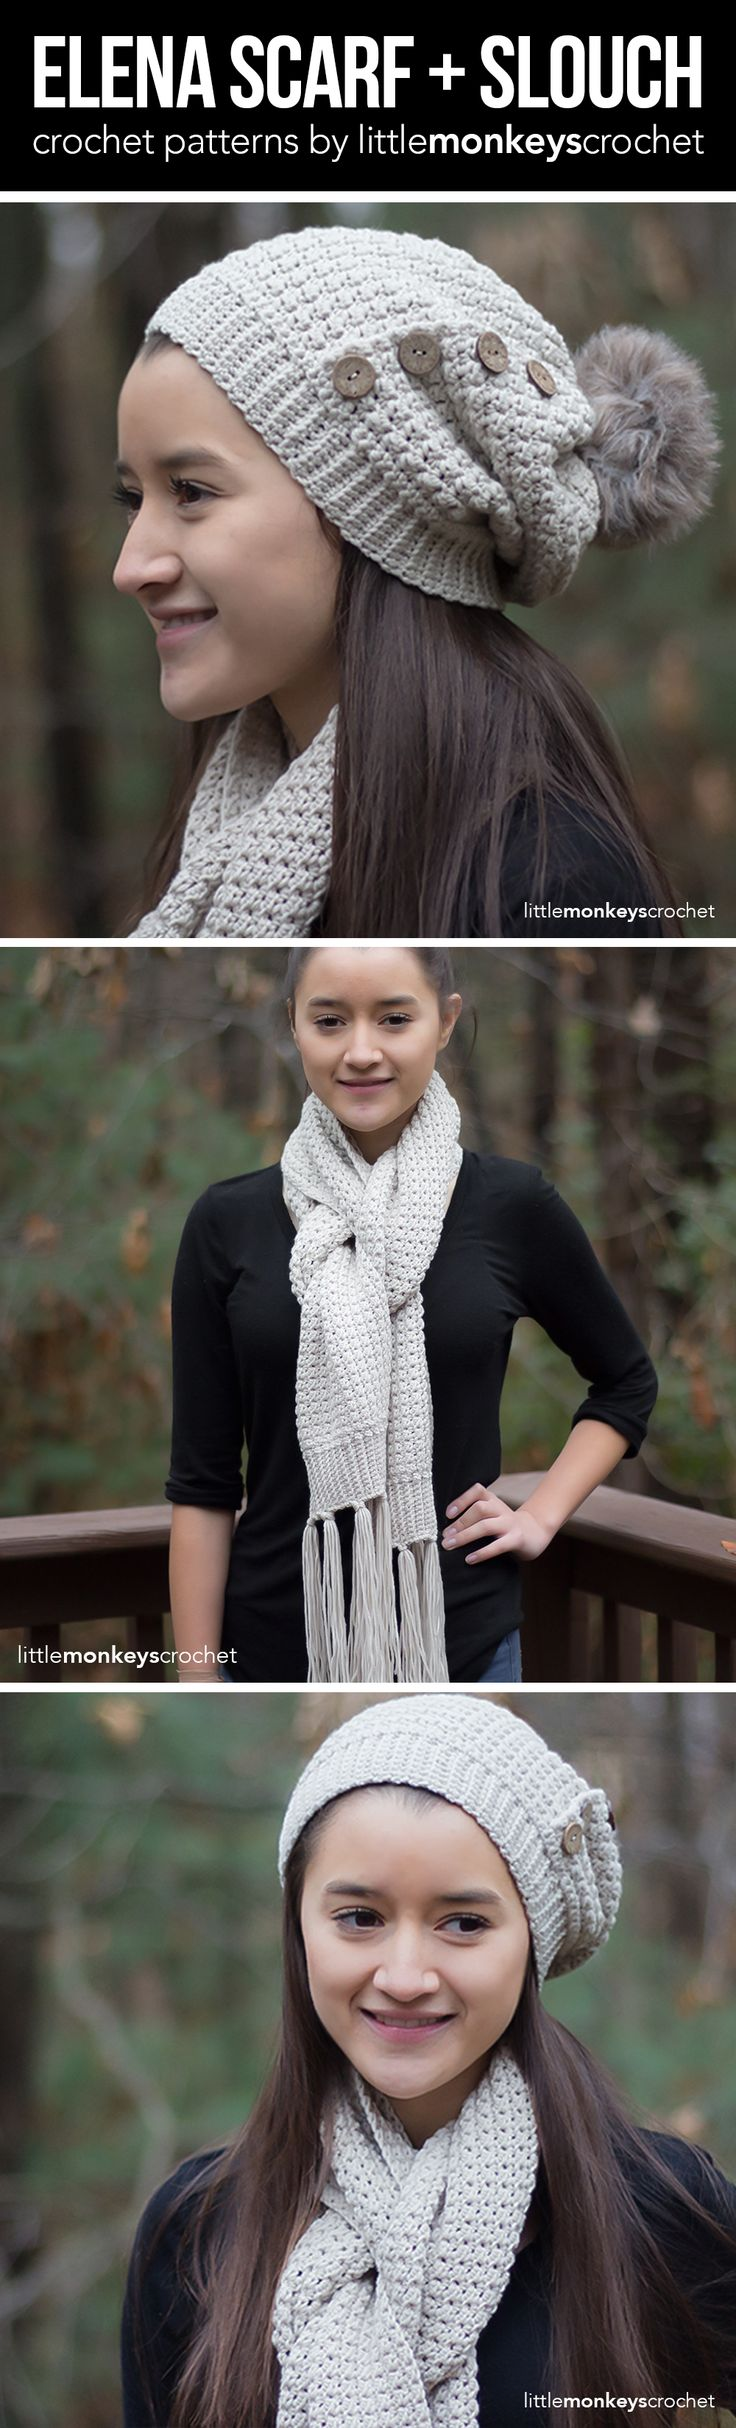 Elena Scarf and Slouch Hat Crochet Pattern Set | Free classic winter scarf and slouchy beanie hat crochet patterns by Little Monkeys Crochet